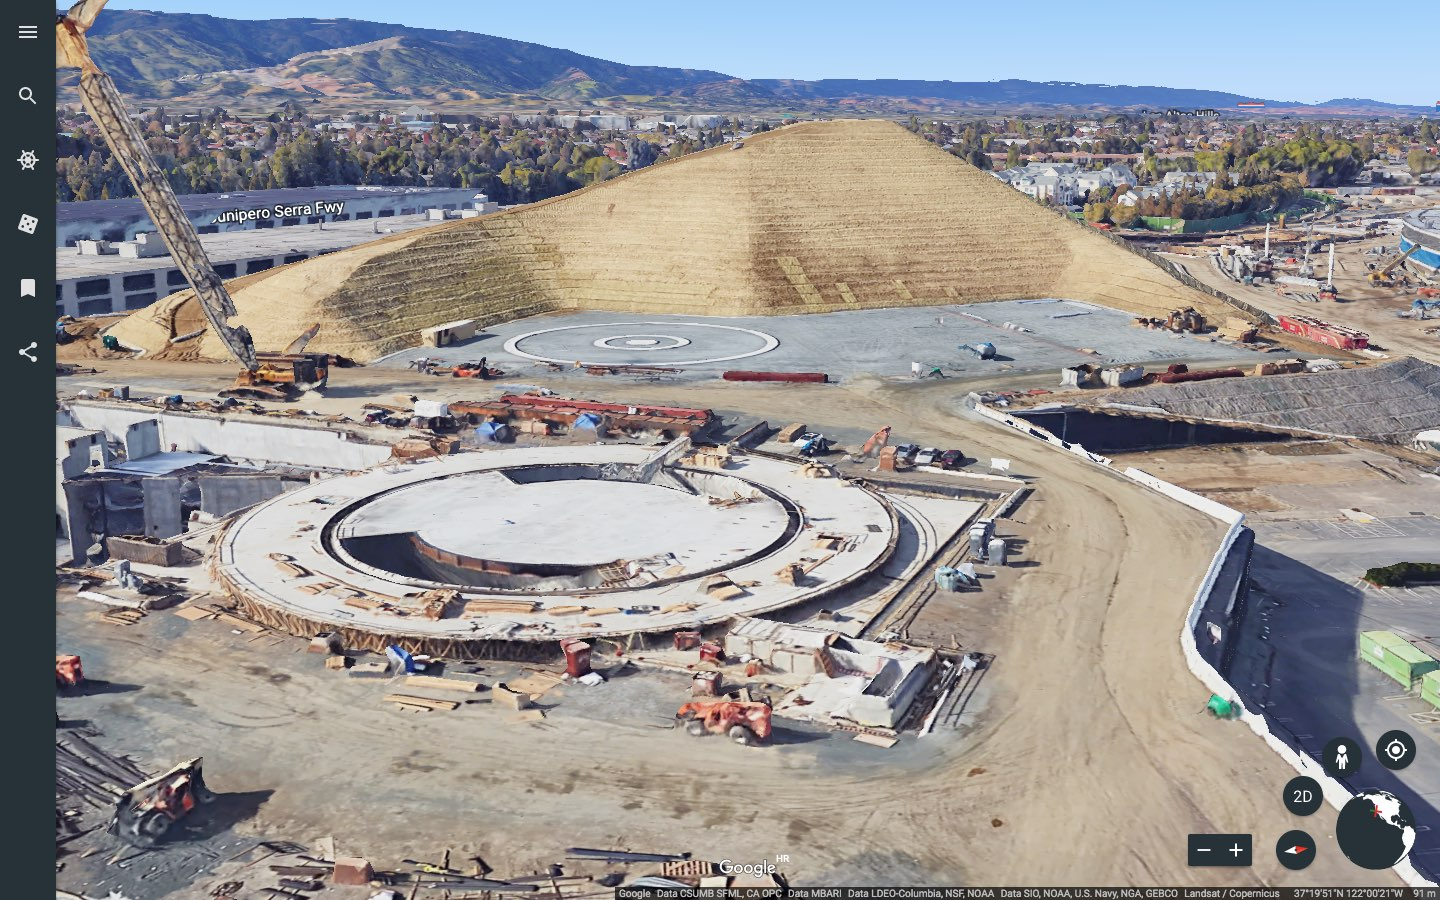 Google Maps gains 3D imagery of Apple Park